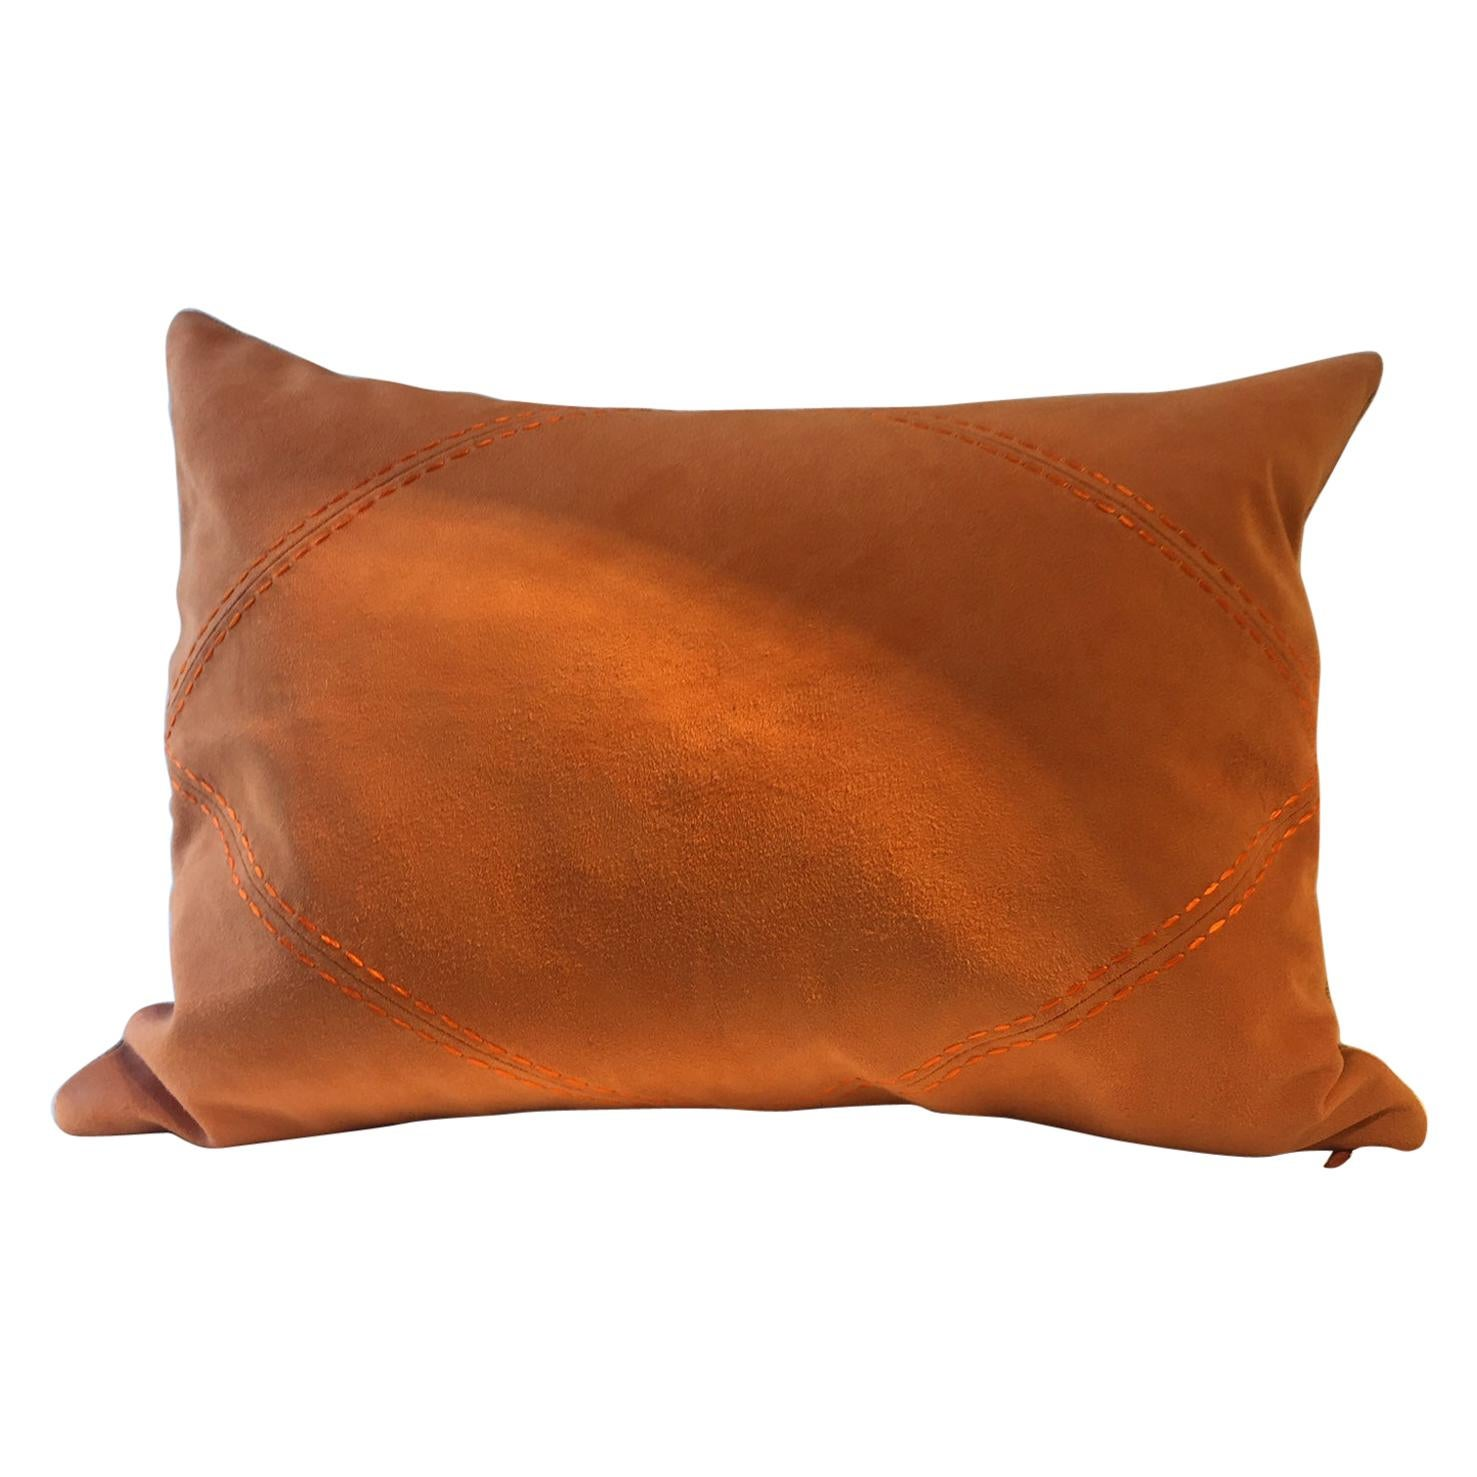 Suede Leather Cushion Color Mandarine Hand Saddle Stitched Rhombus Detail